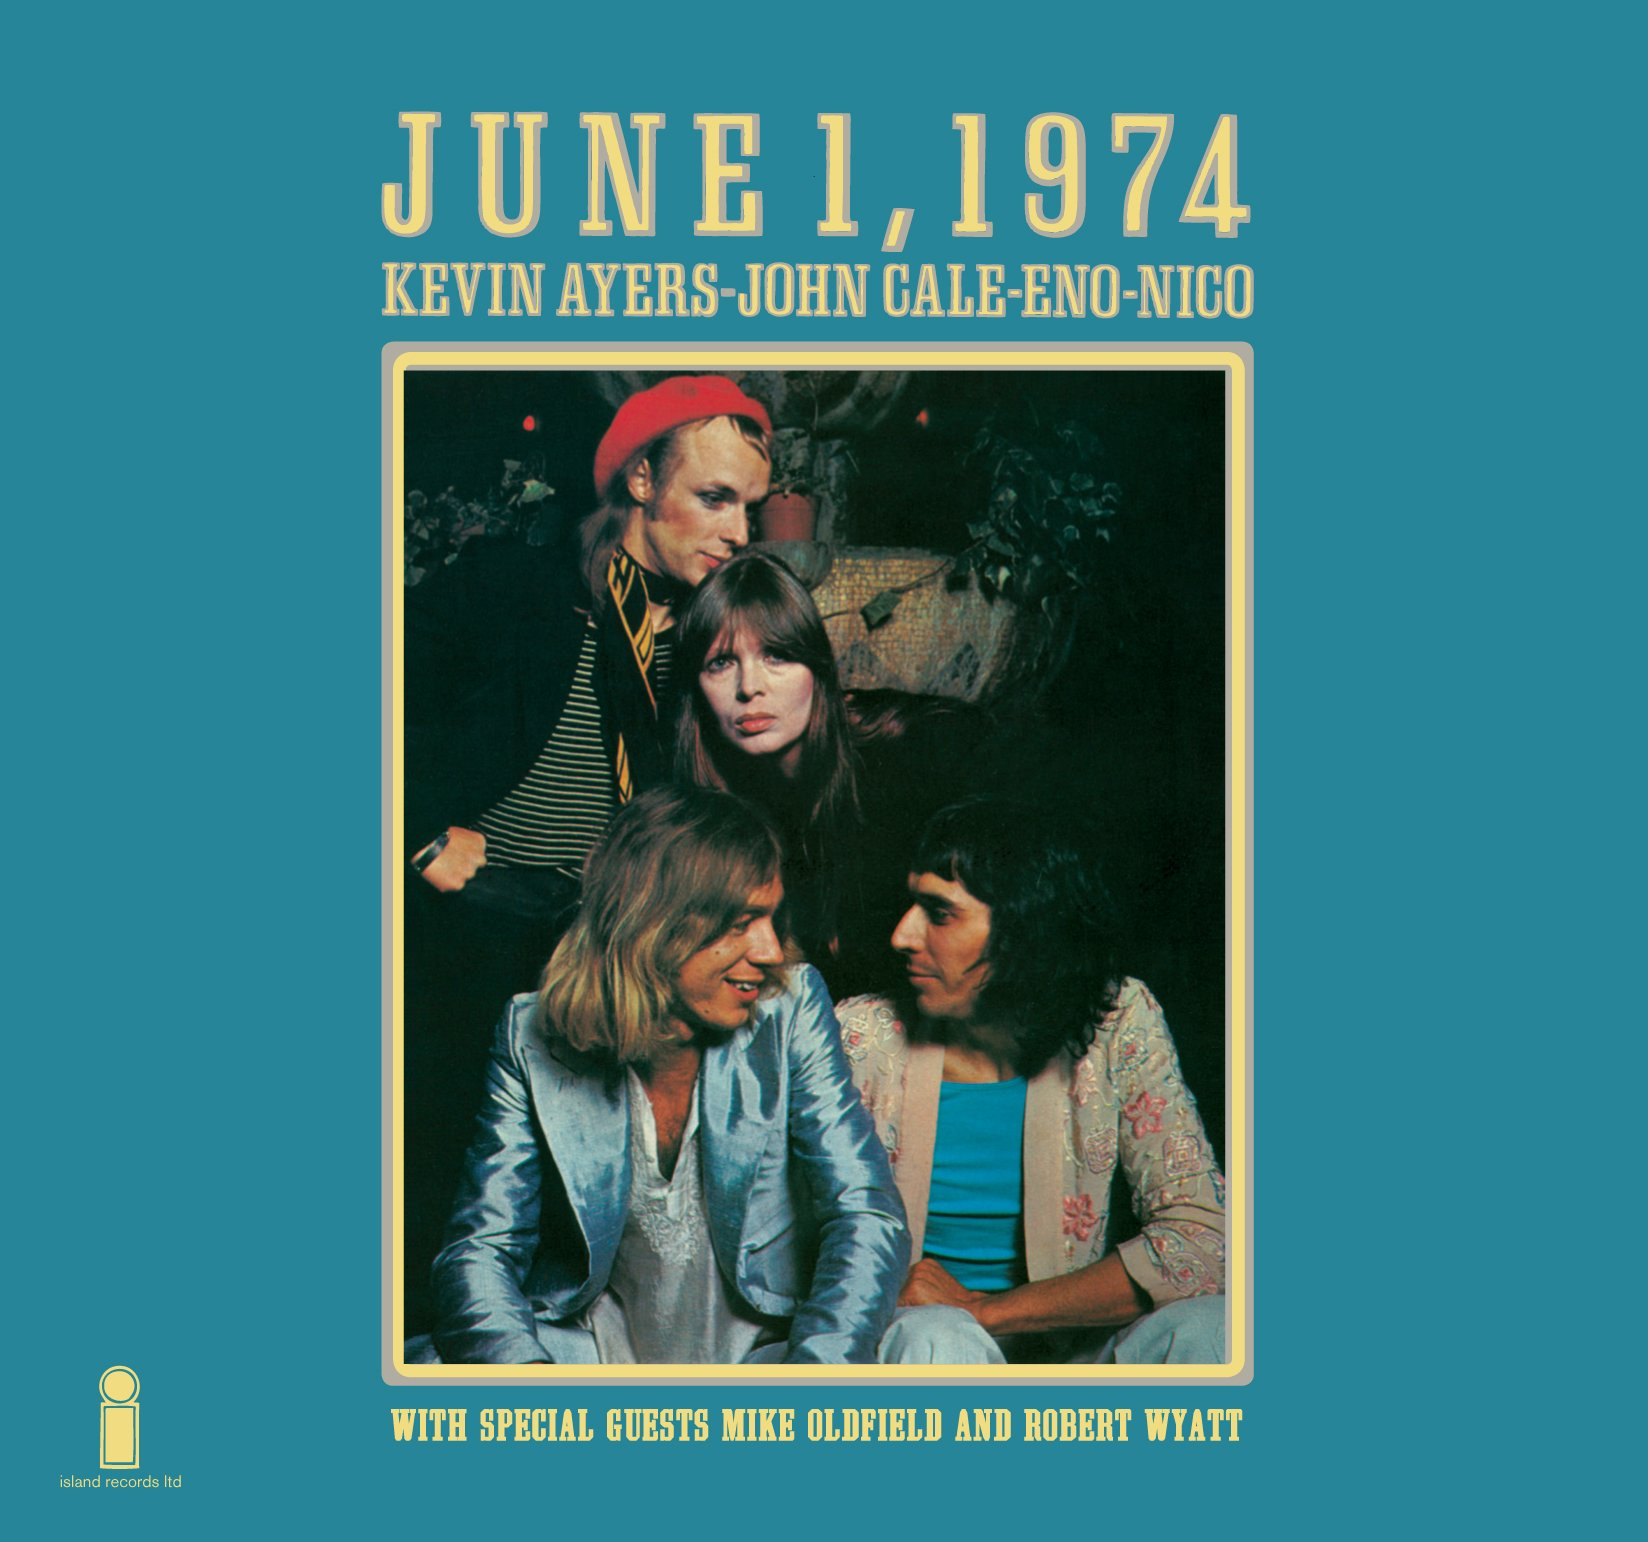 CD : Ayers, Kevin / Cale, John / Eno, Brian / Nico - June 1 1974 (Limited Edition, Deluxe Edition, Mini LP Sleeve, Remastered, Spain - Import)